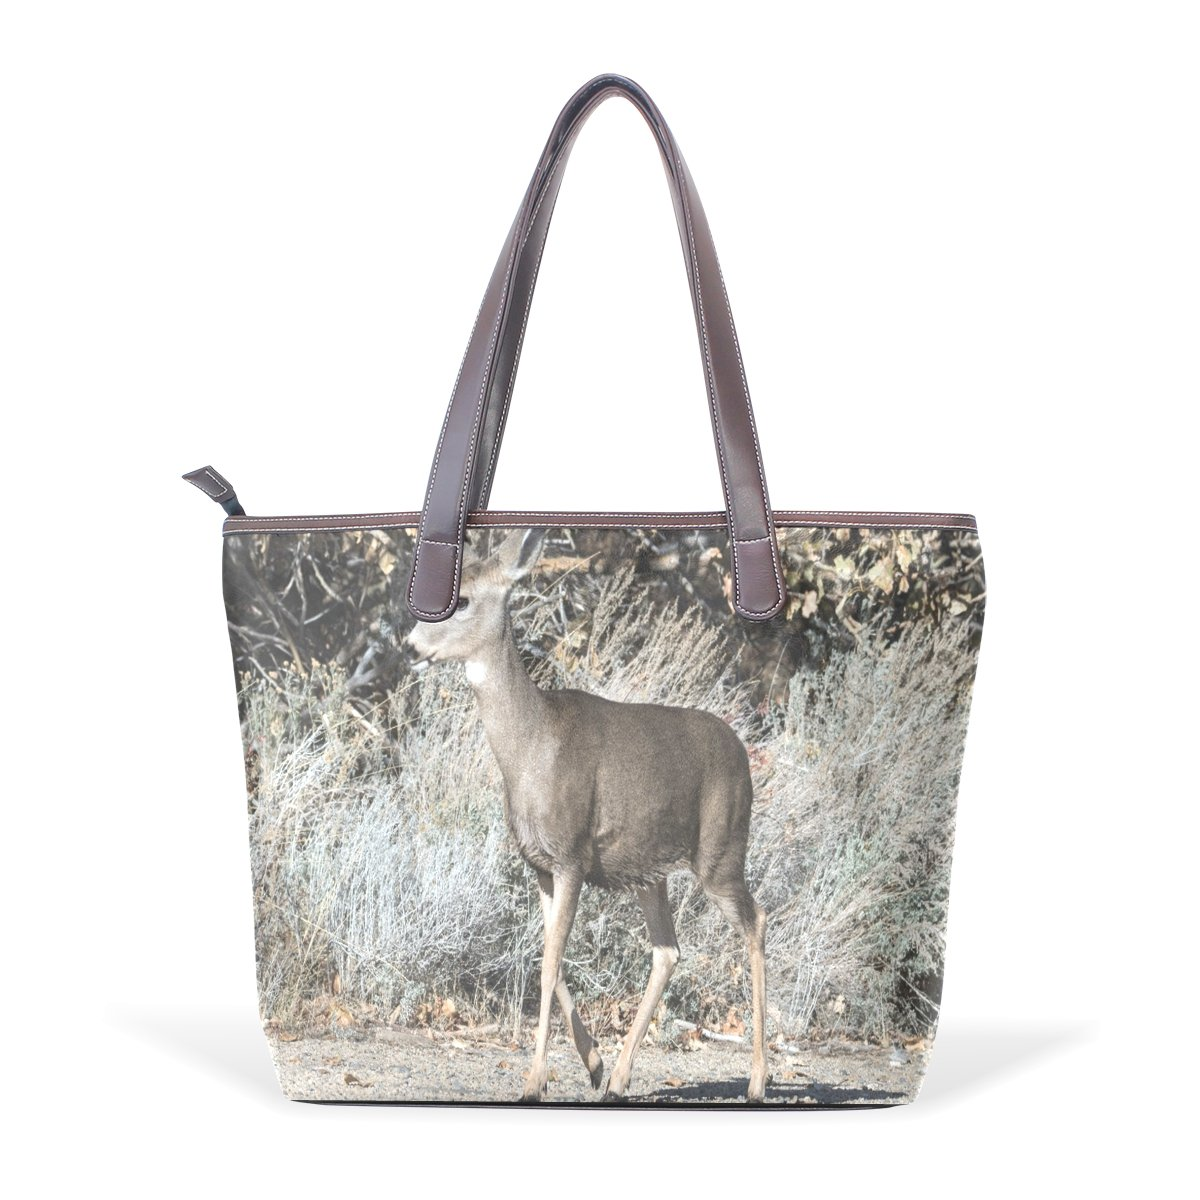 Ye Store Out Of The Forest Lady PU Leather Handbag Tote Bag Shoulder Bag Shopping Bag